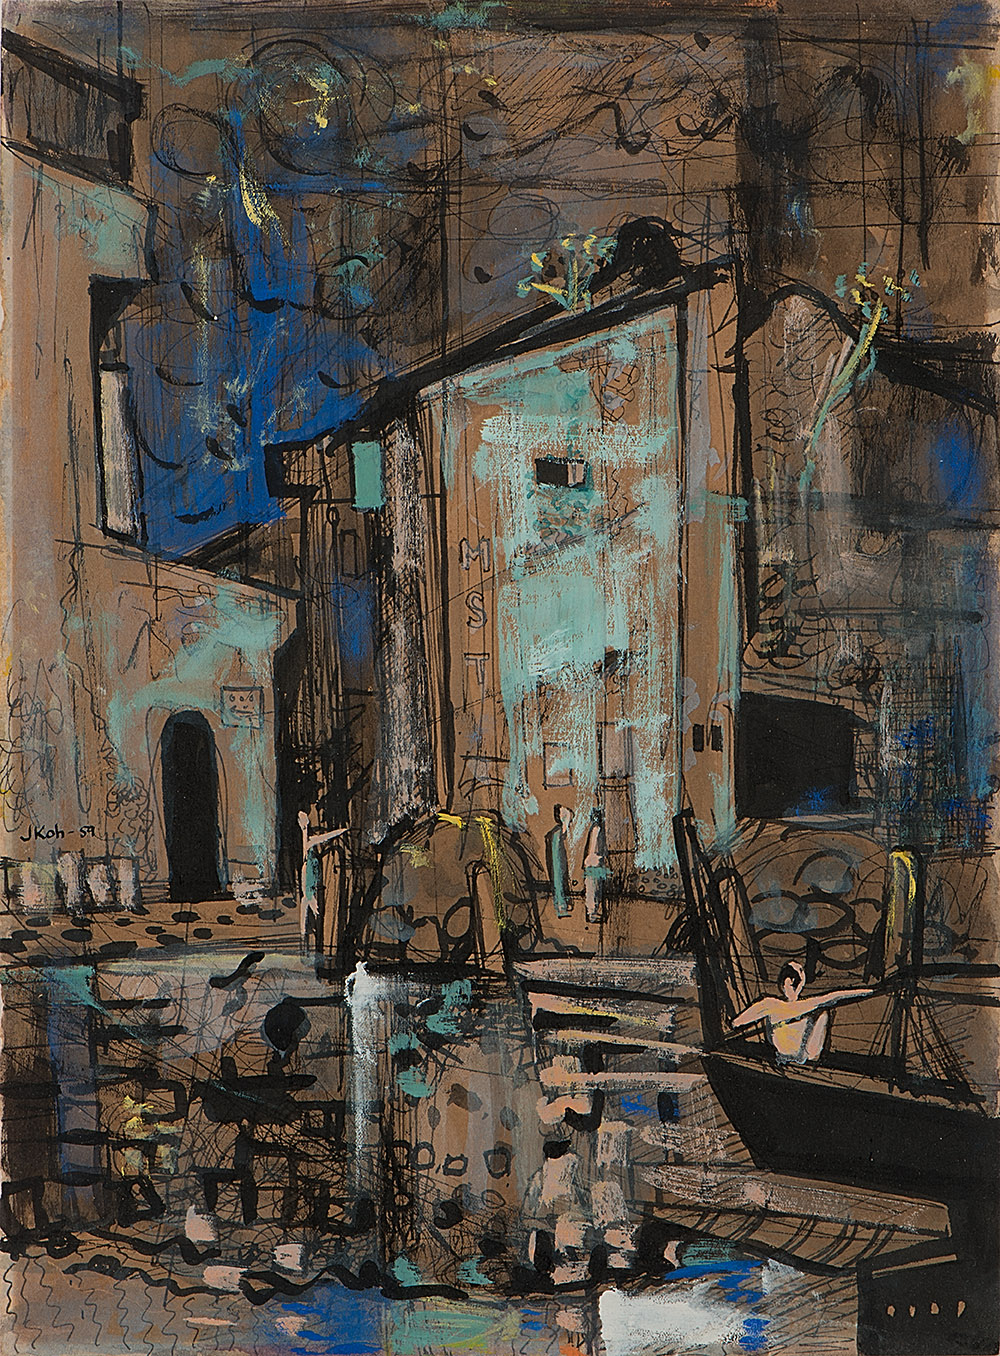 No.1 Heeren Street with Chinese Junk, 1959, Mixed Media on Paper, 37cm x 27cm